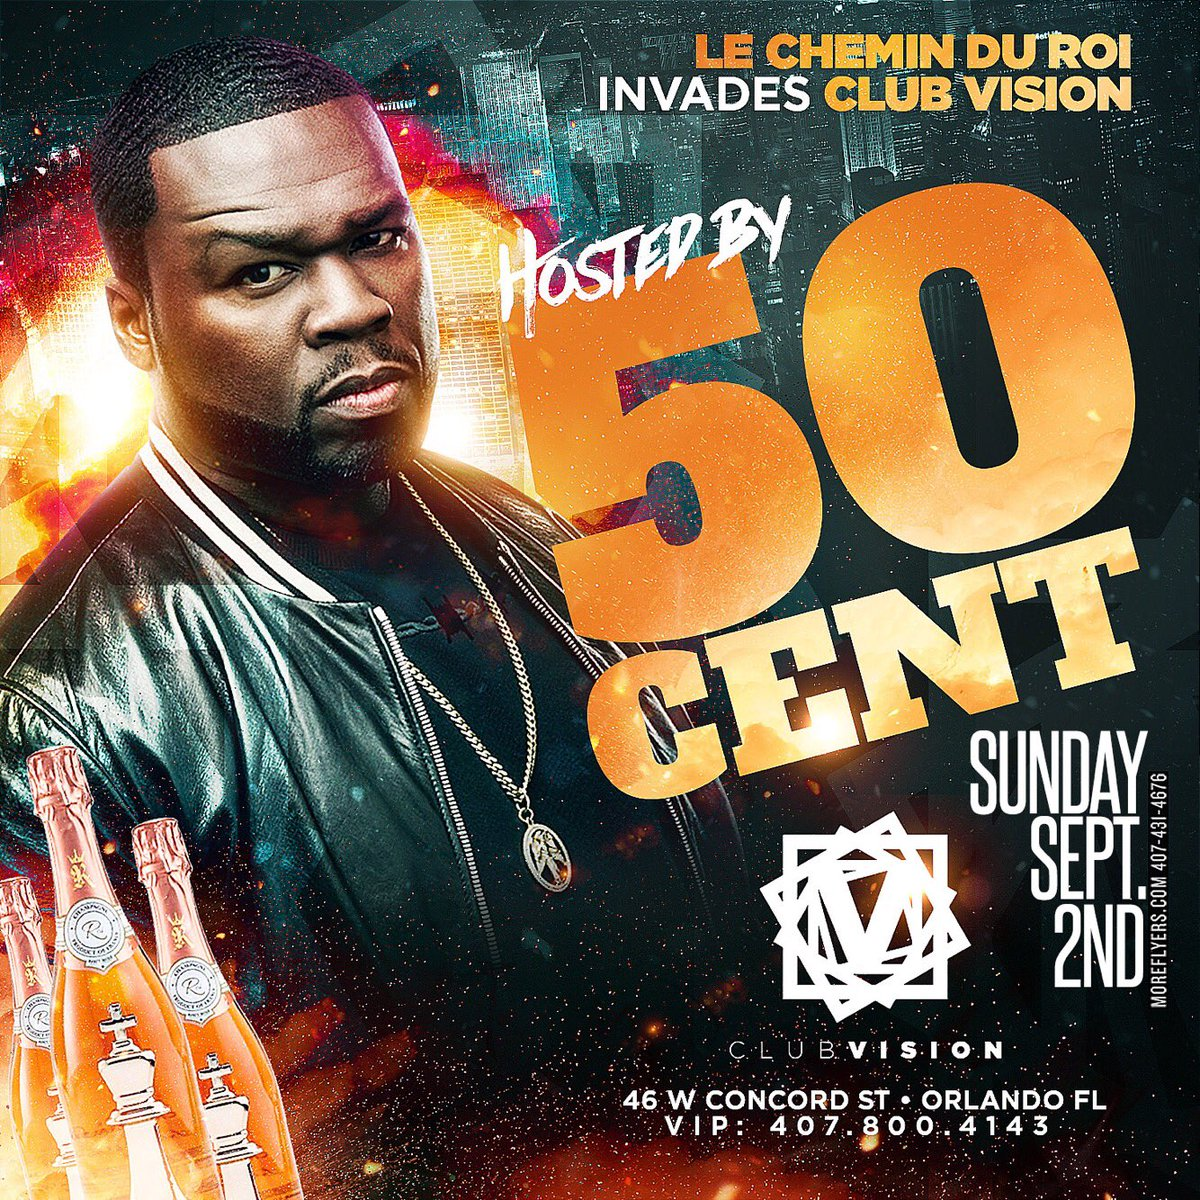 Orlando tonight, it's lit ... #lecheminduroi https://t.co/kP56KC3kbe